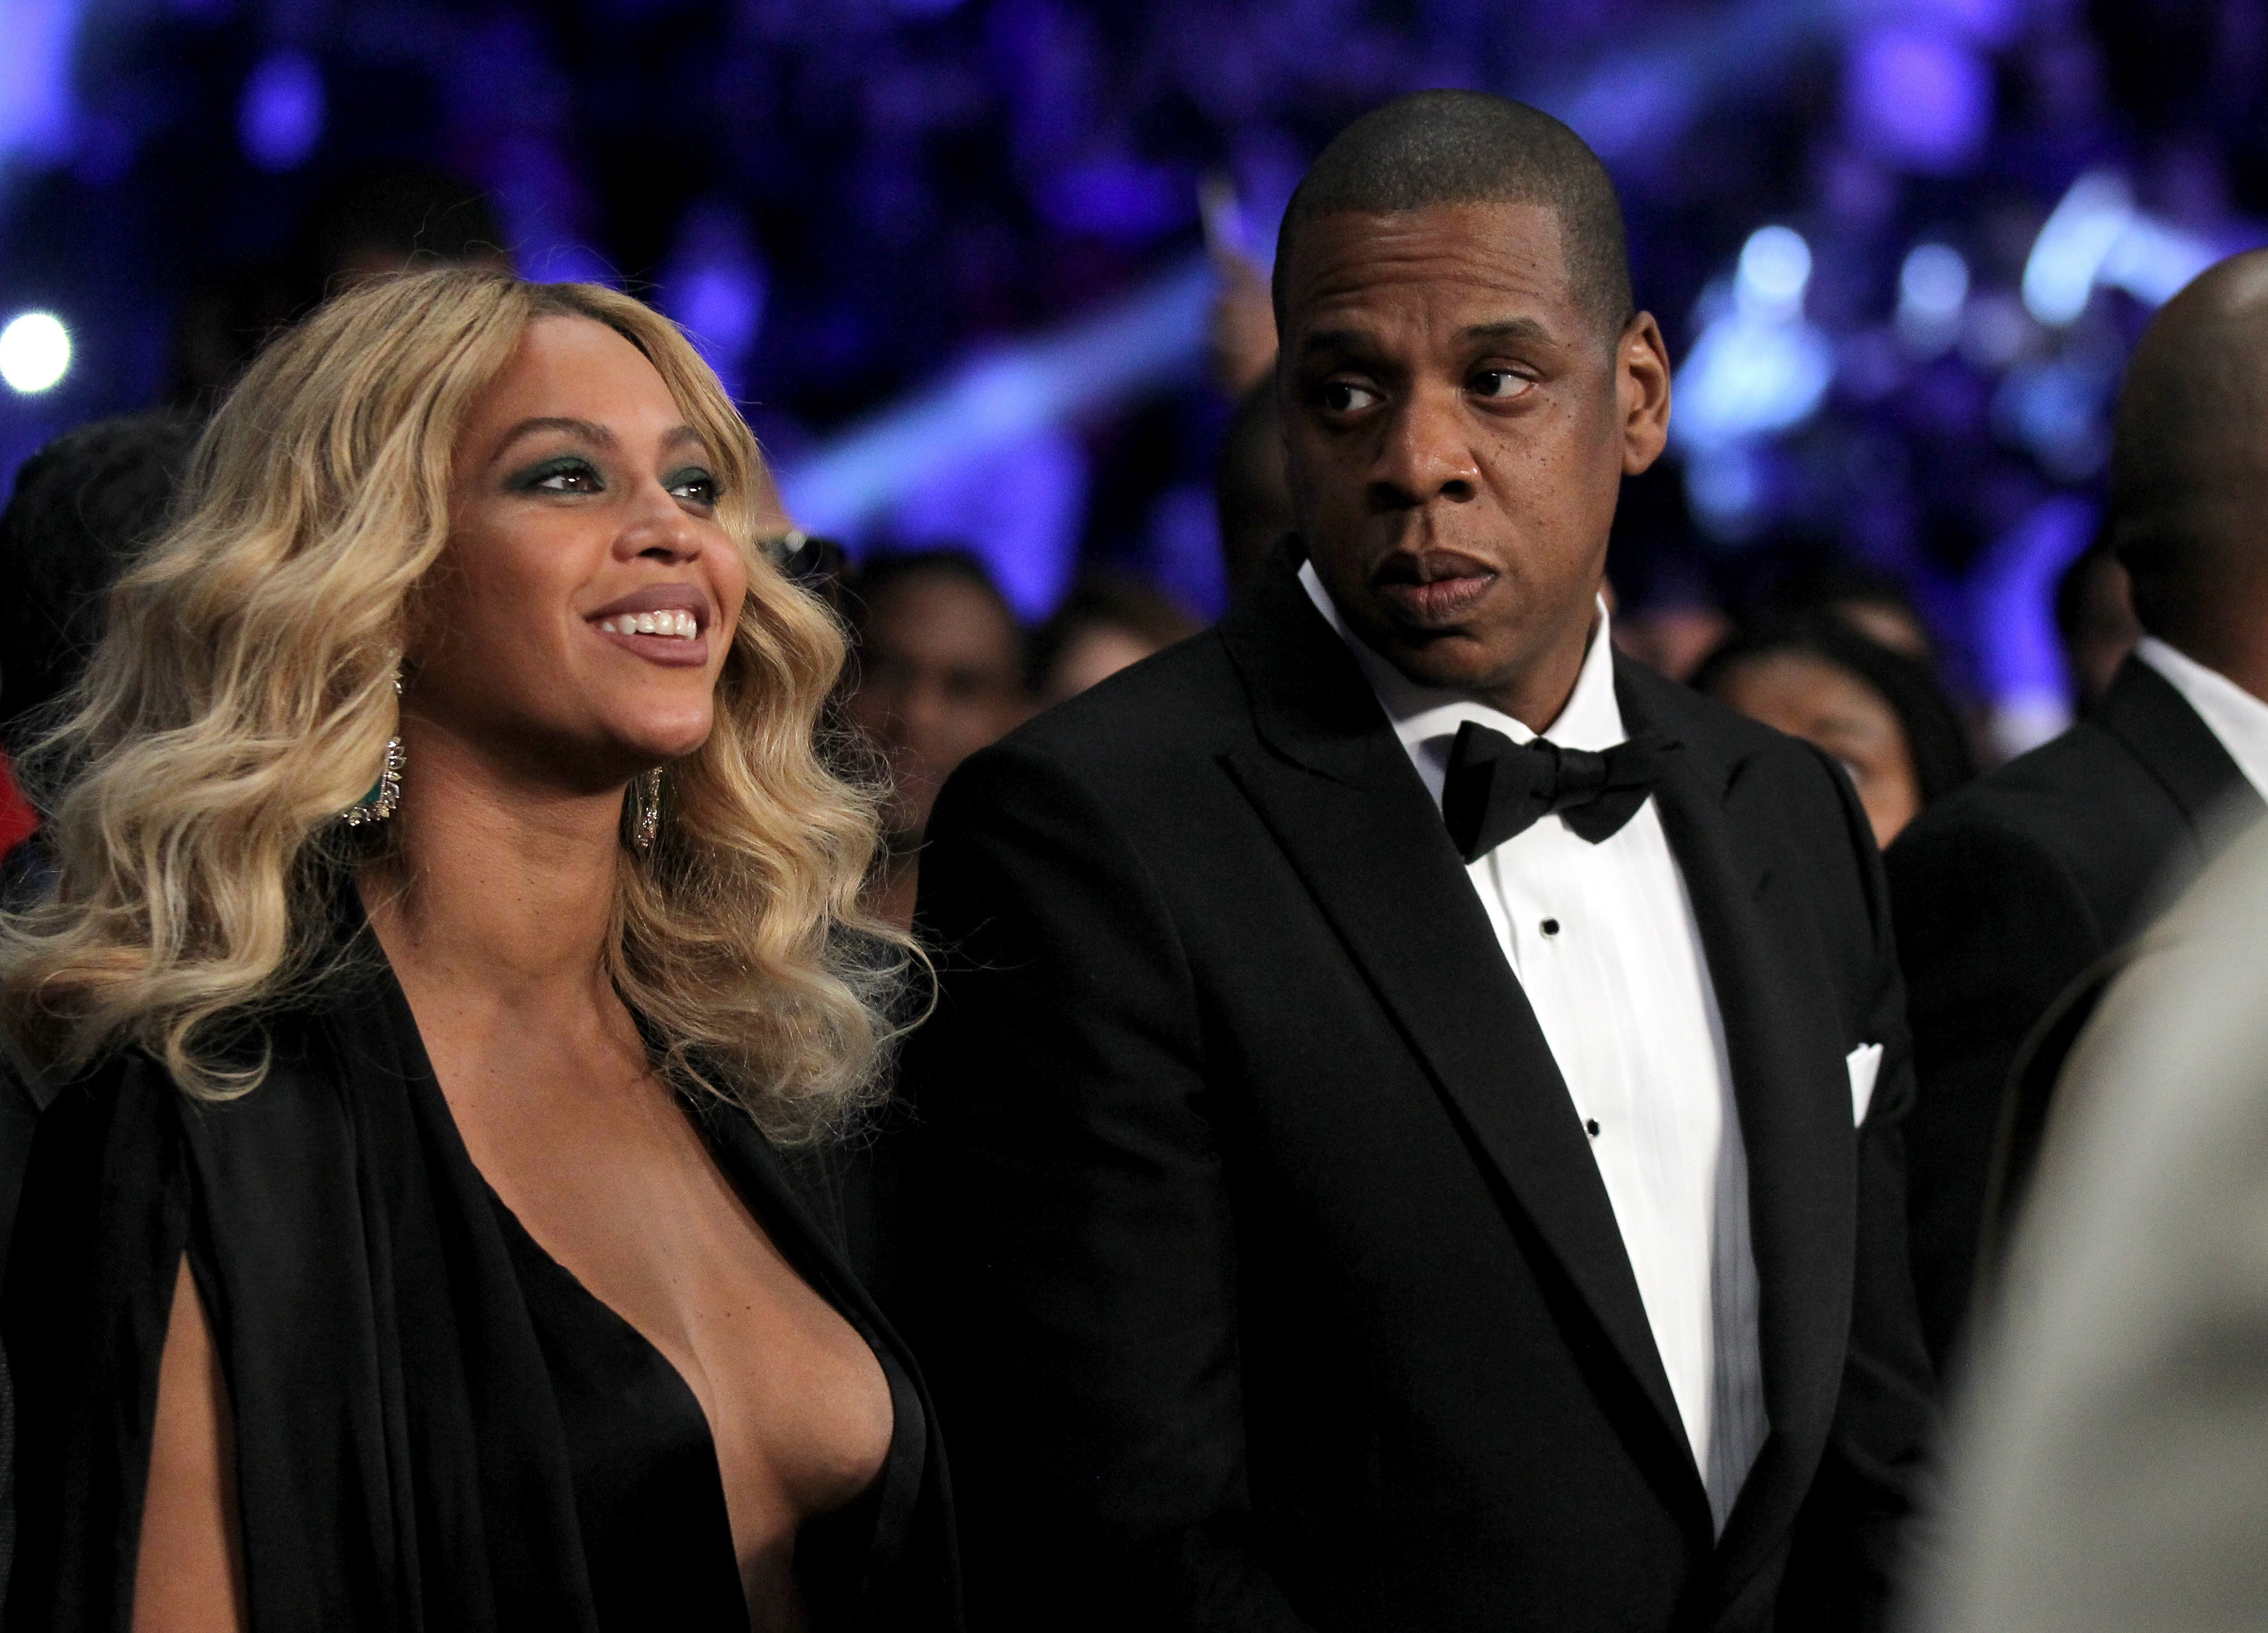 A cantora Beyoncé e o rapper Jay-Z (Foto: Getty Images)